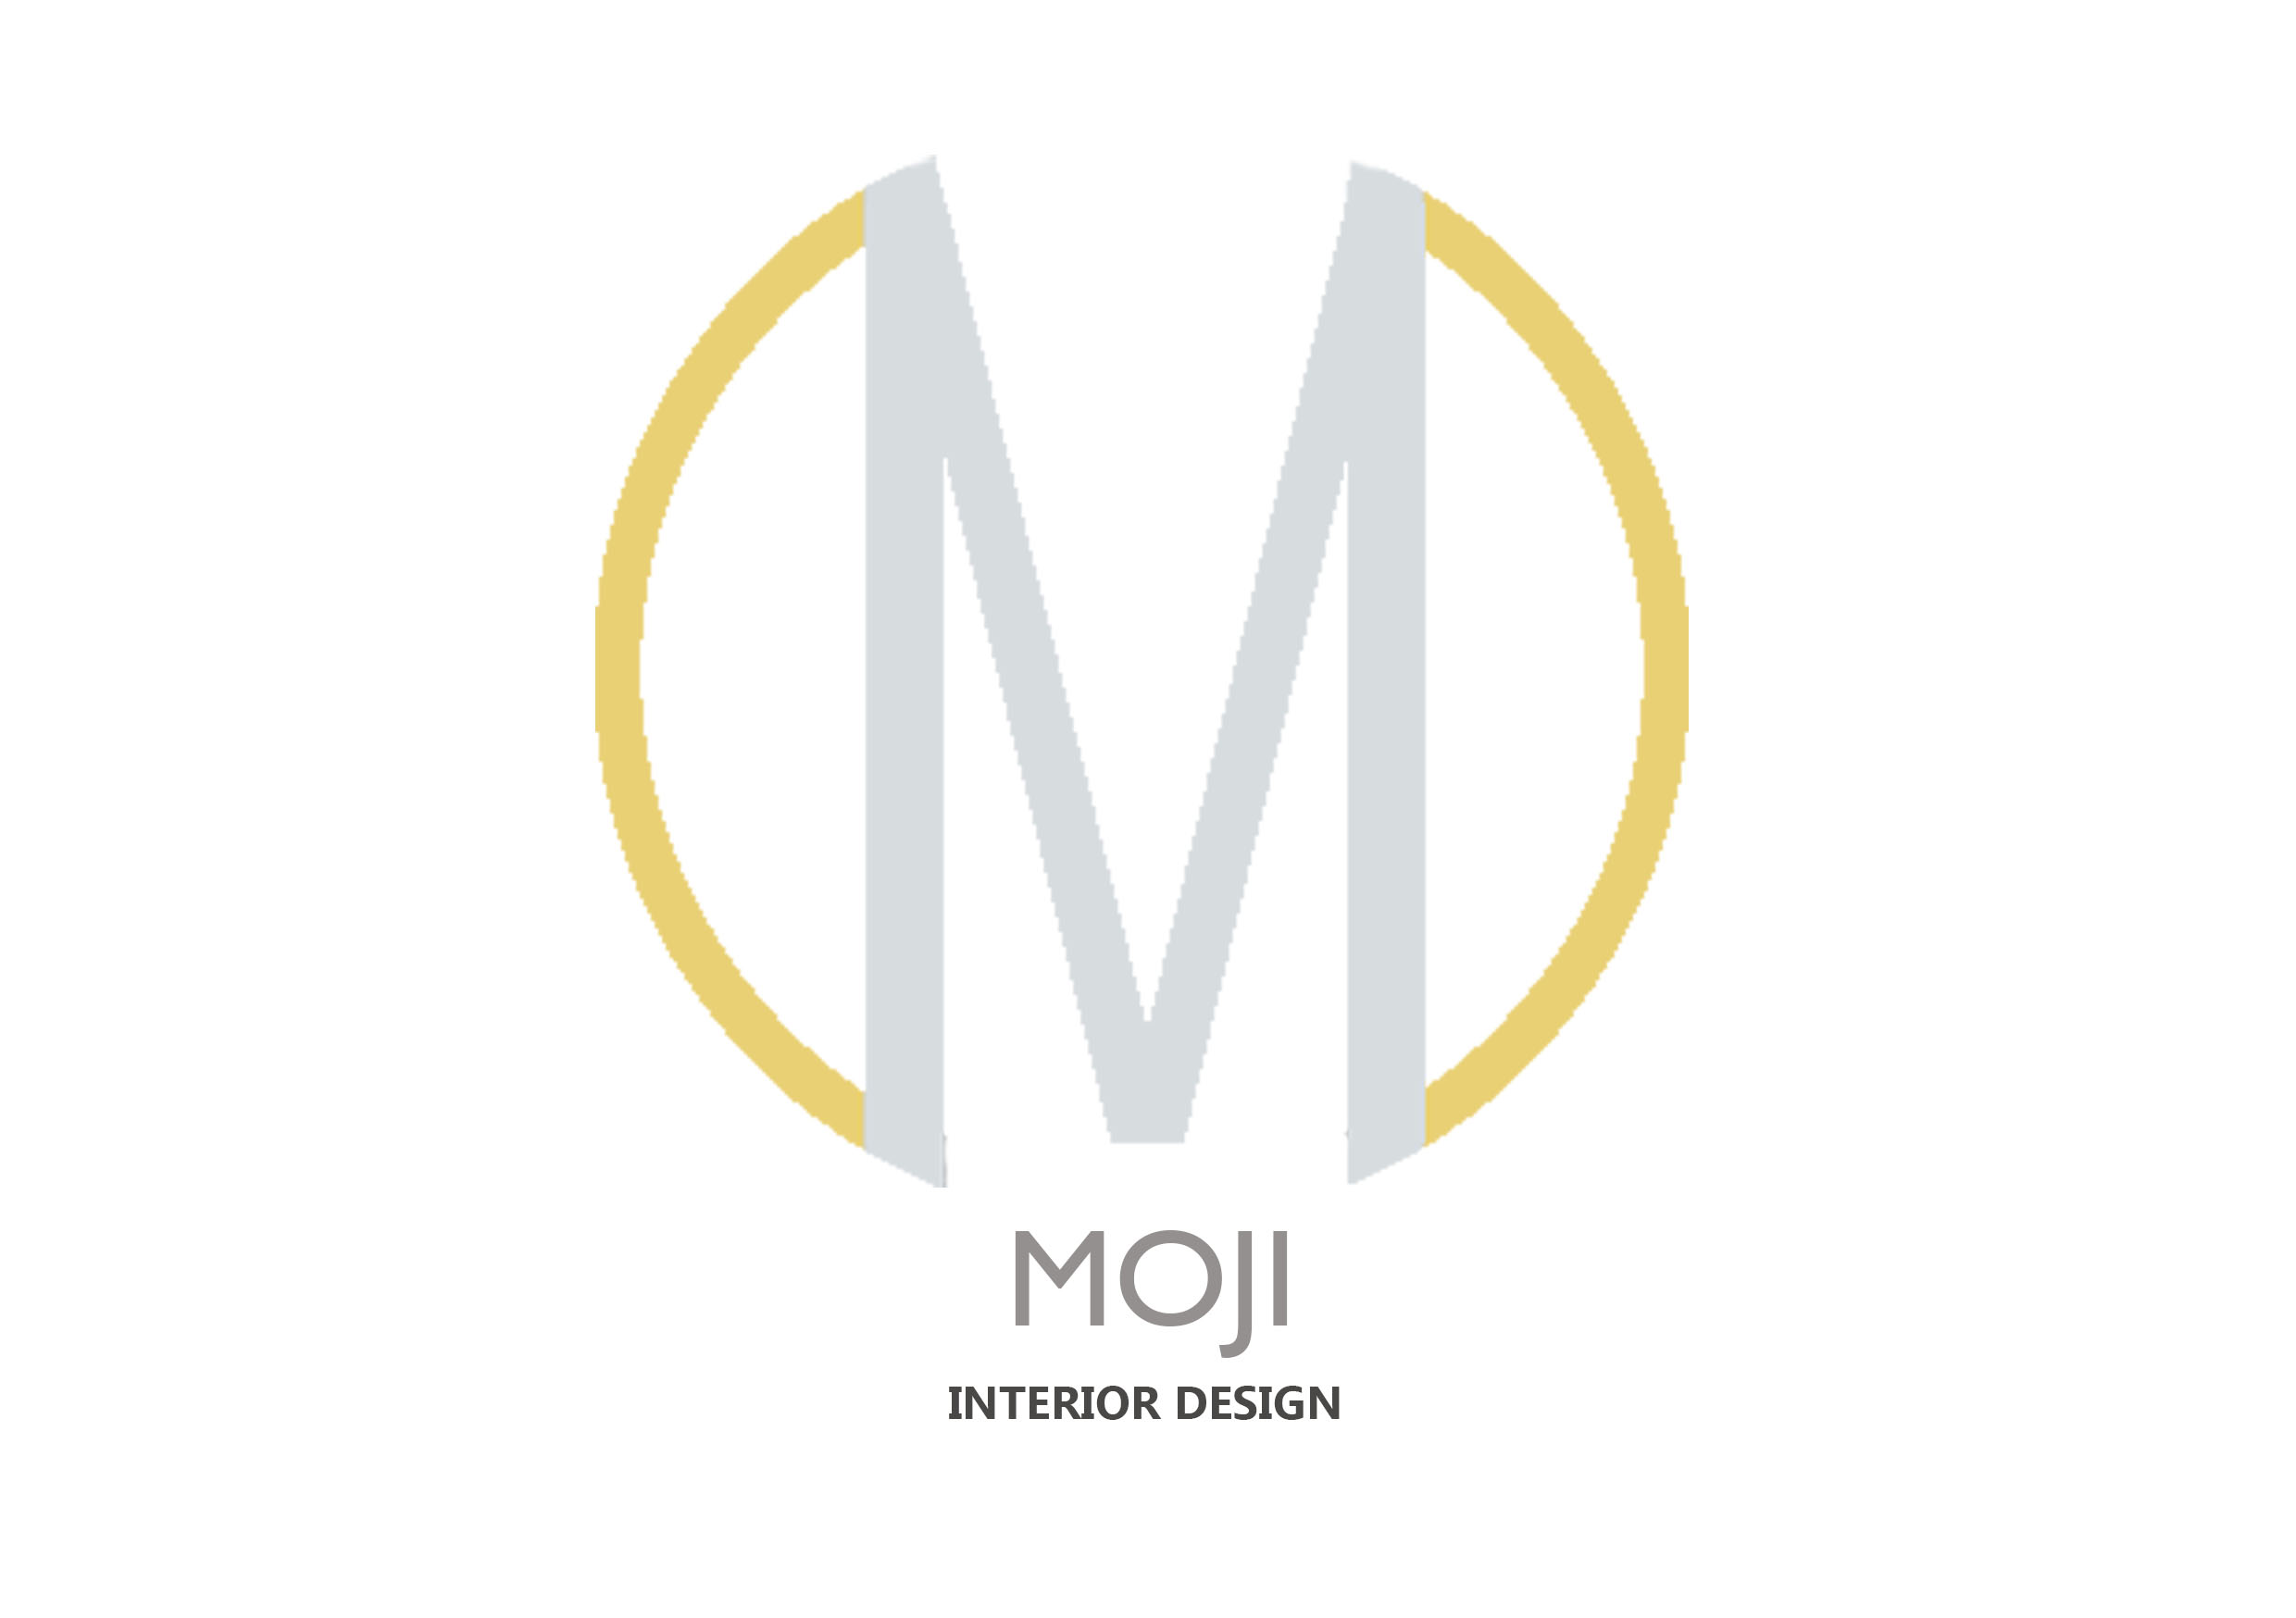 Moji Interior design logo - Moji Interiors